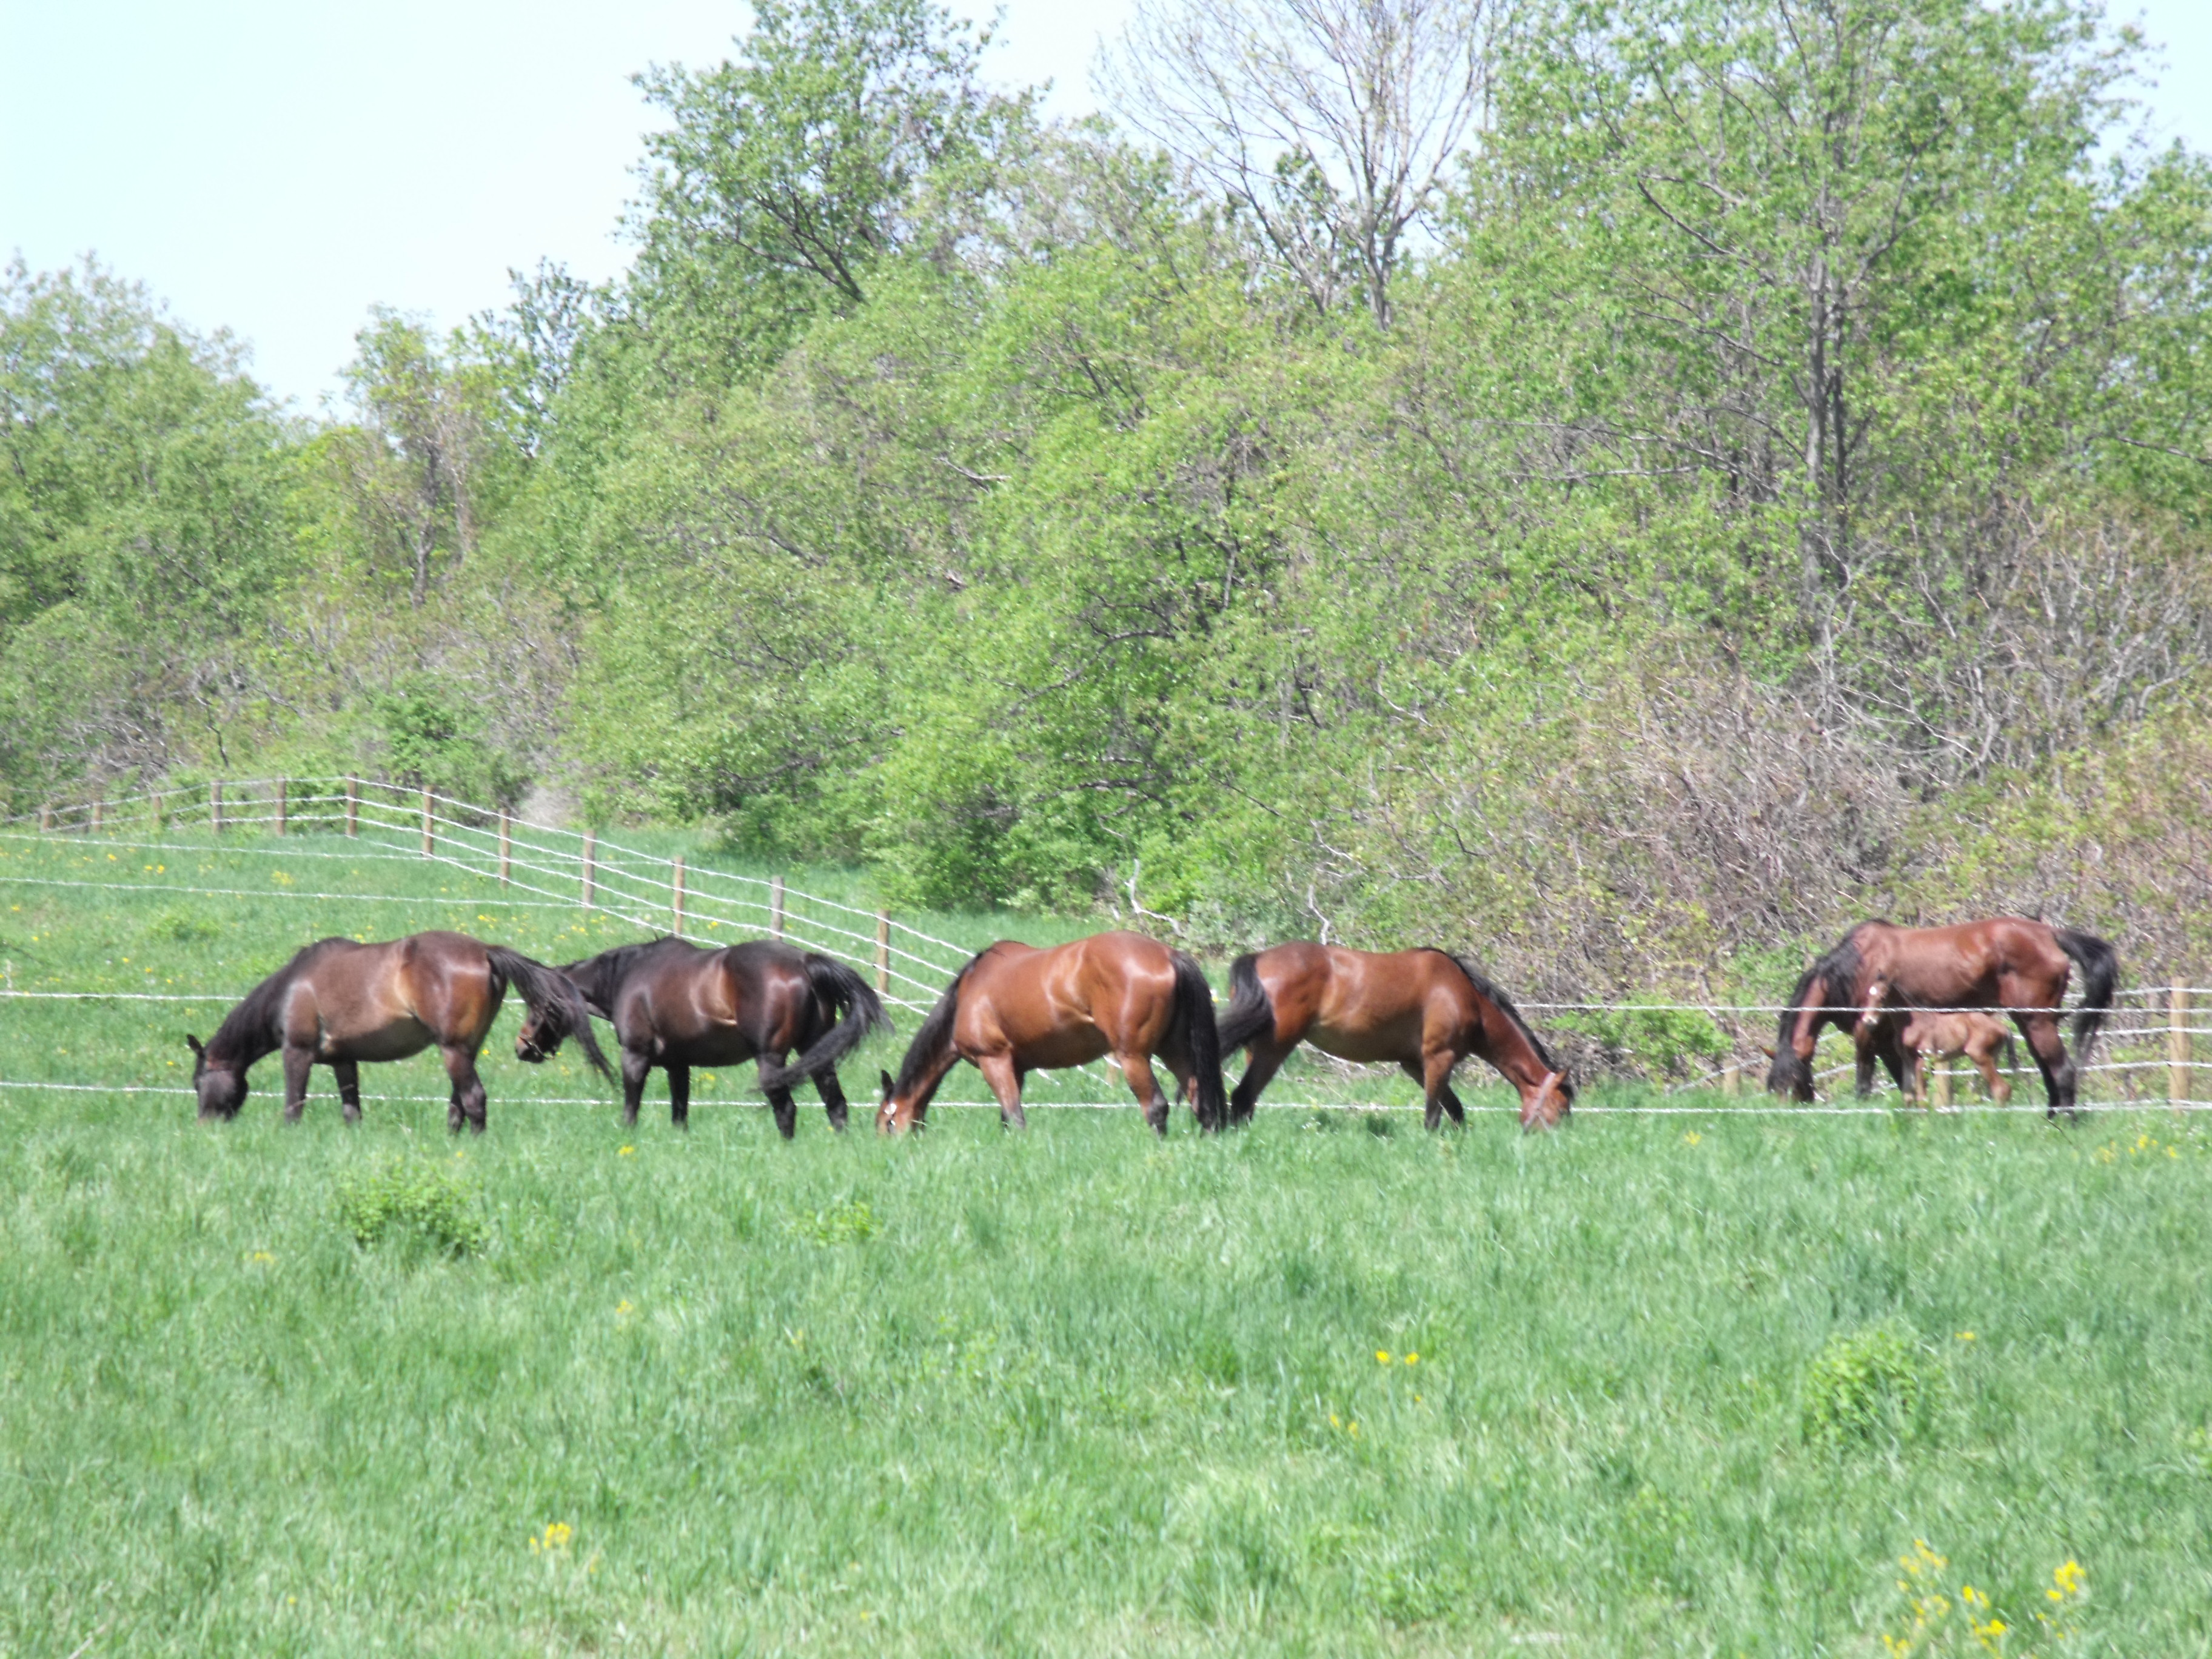 Keeping your small horse boarding business afloat is easier if you have land for turnout options